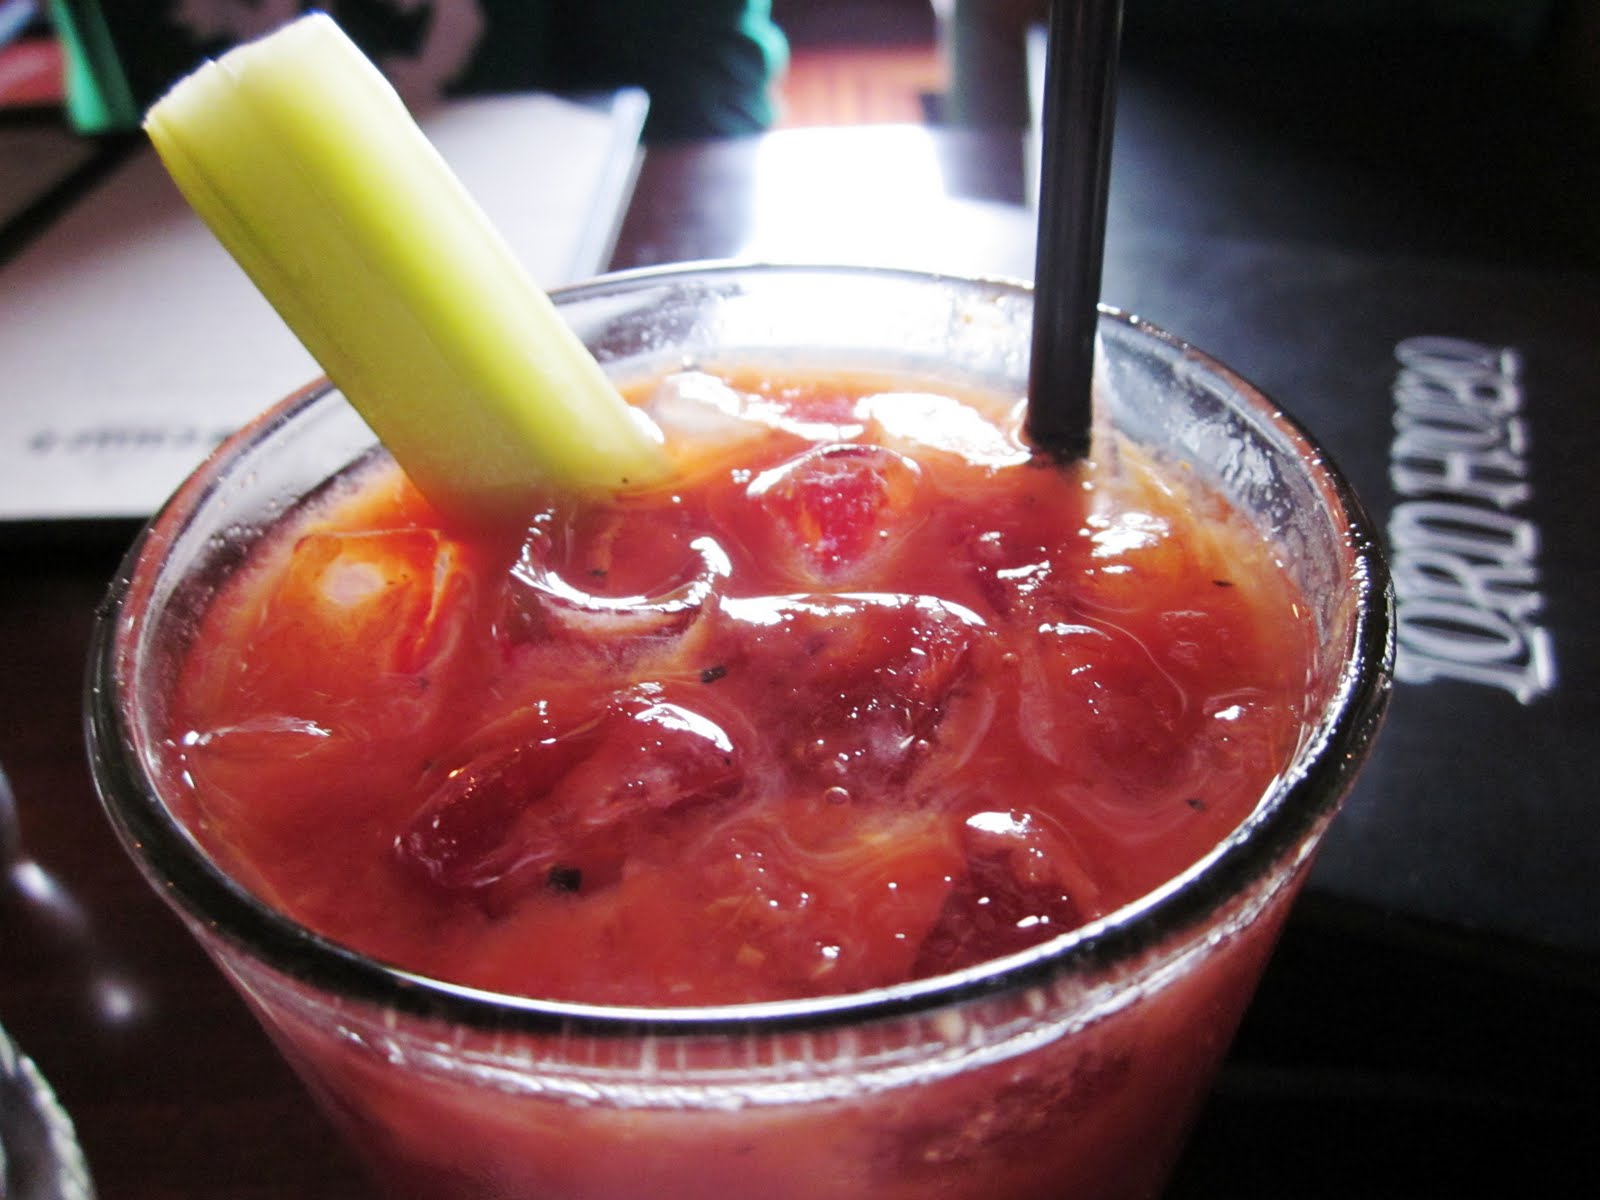 , that's no ordinary celery stick - it is actually a pickled celery ...